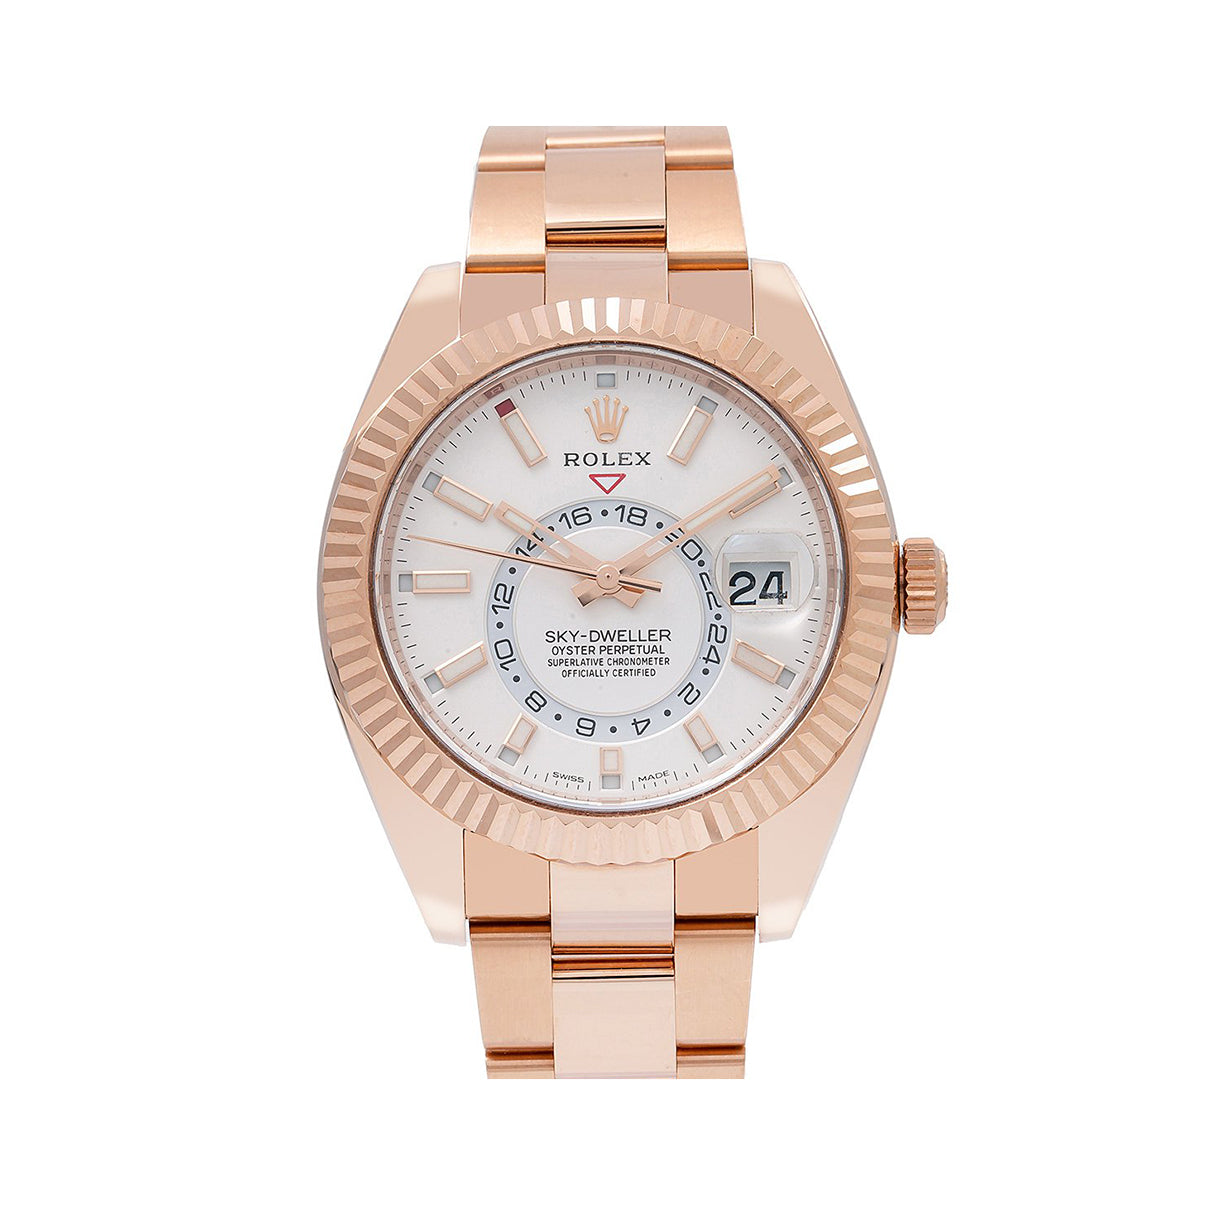 Rolex Sky-Dweller 326935 42MM White Dial With Rose Gold Oyster Bracelet